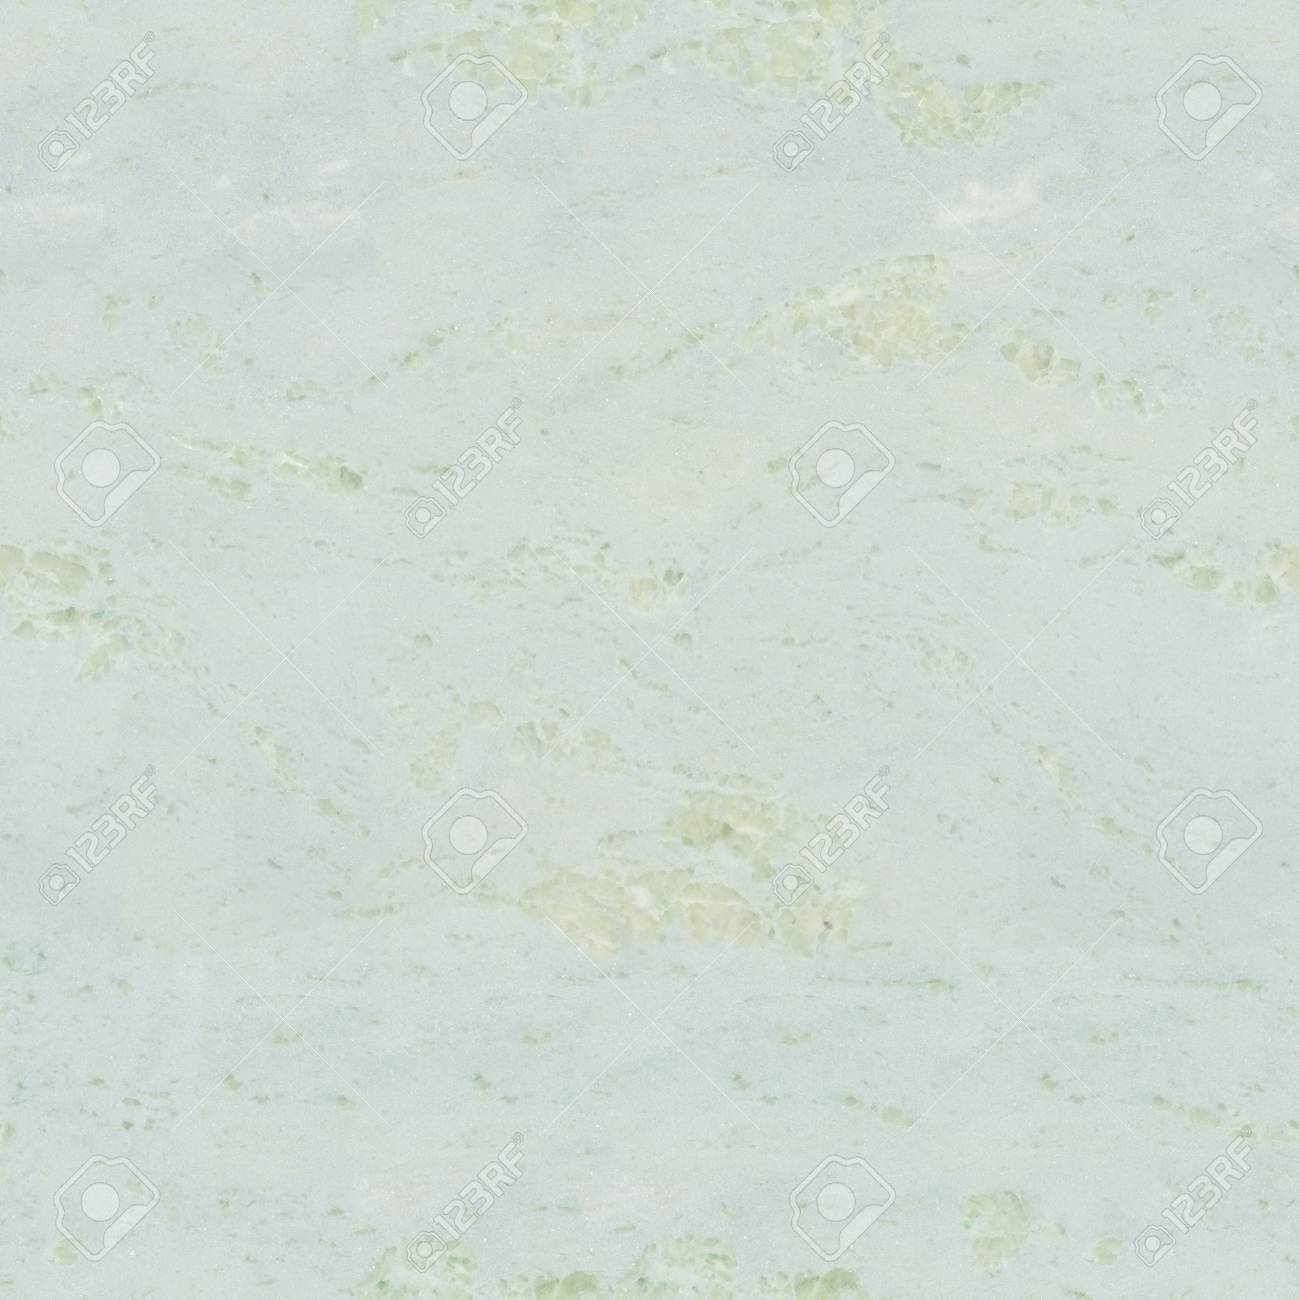 Cool Wallpaper High Quality Marble - 81737389-carrara-marble-marble-texture-quality-stone-texture-seamless-square-background-tile-ready-high-resol  Collection_5957.jpg